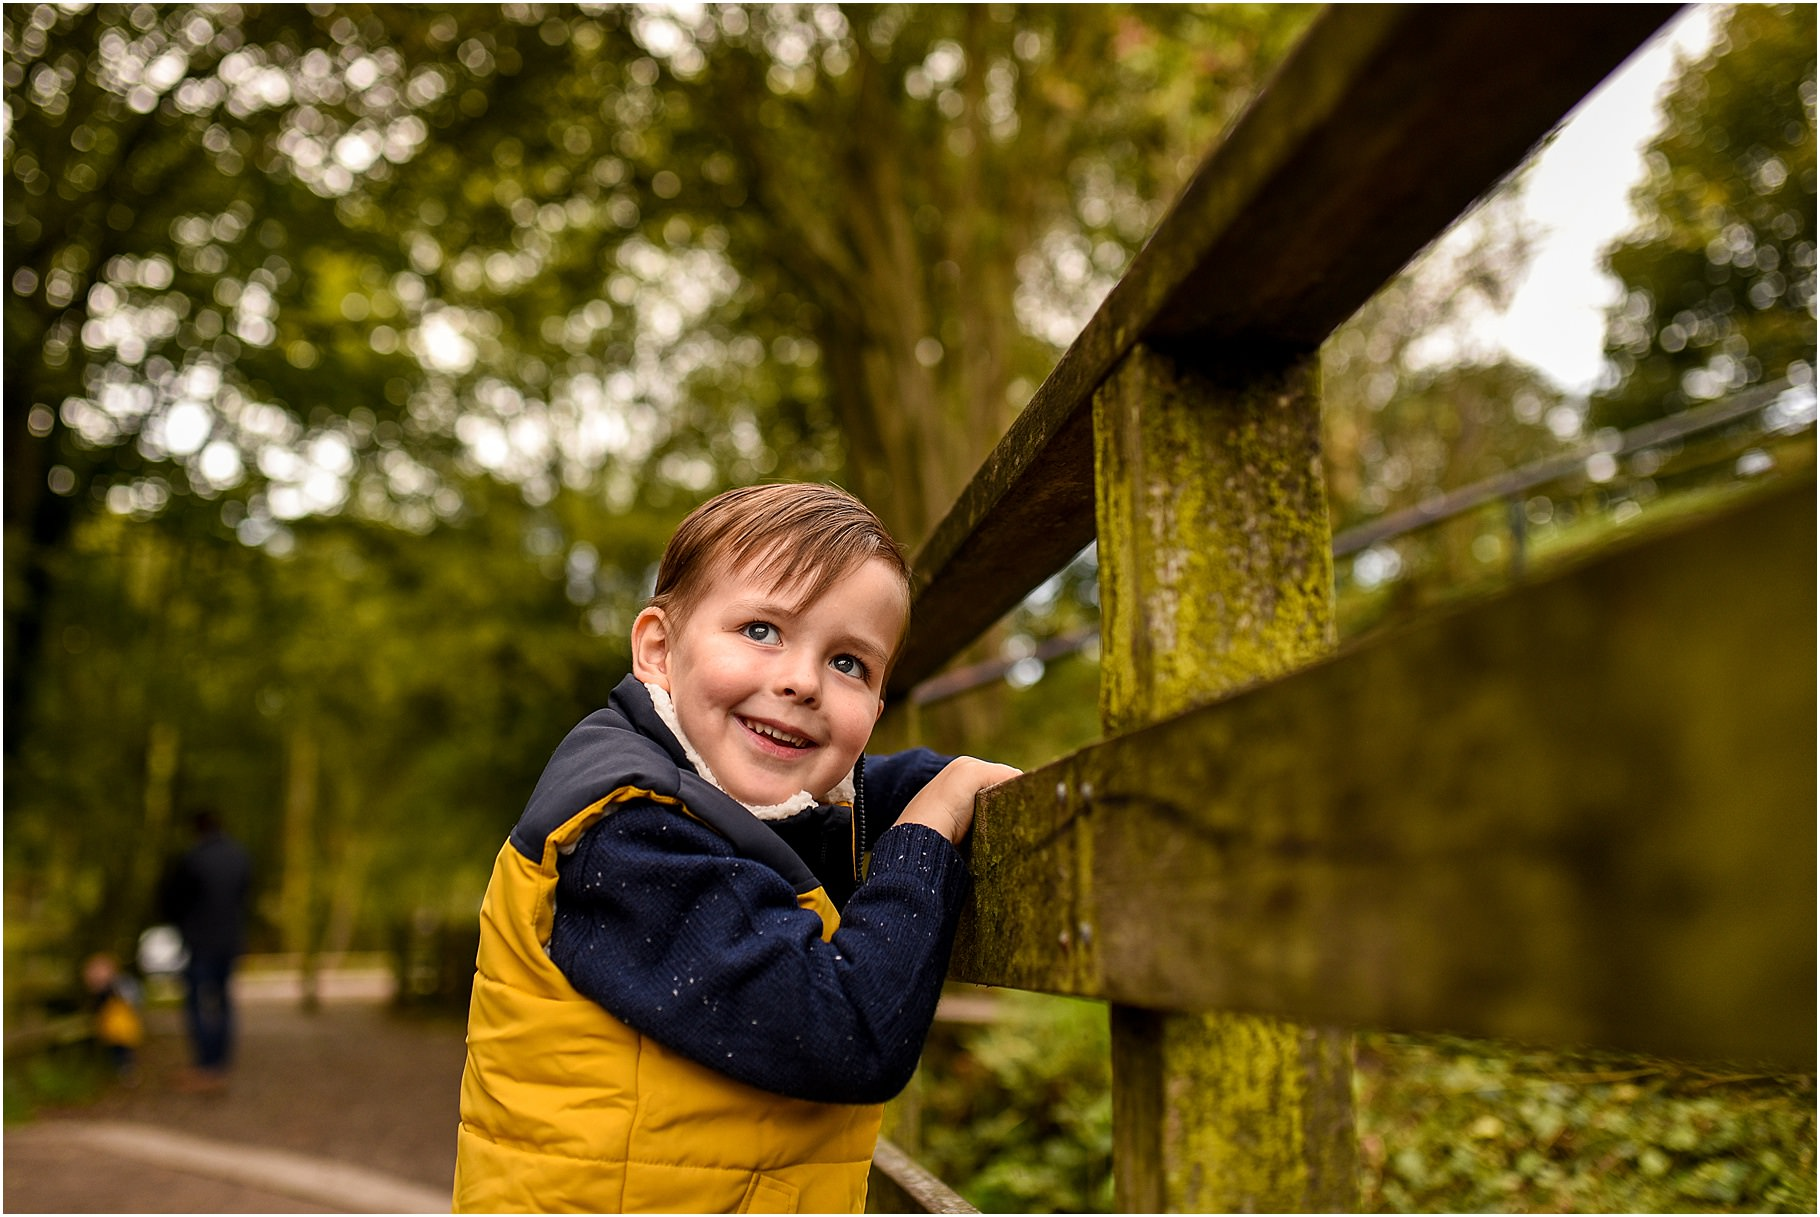 yarrow-valley-country-park-family-shoot - 01.jpg